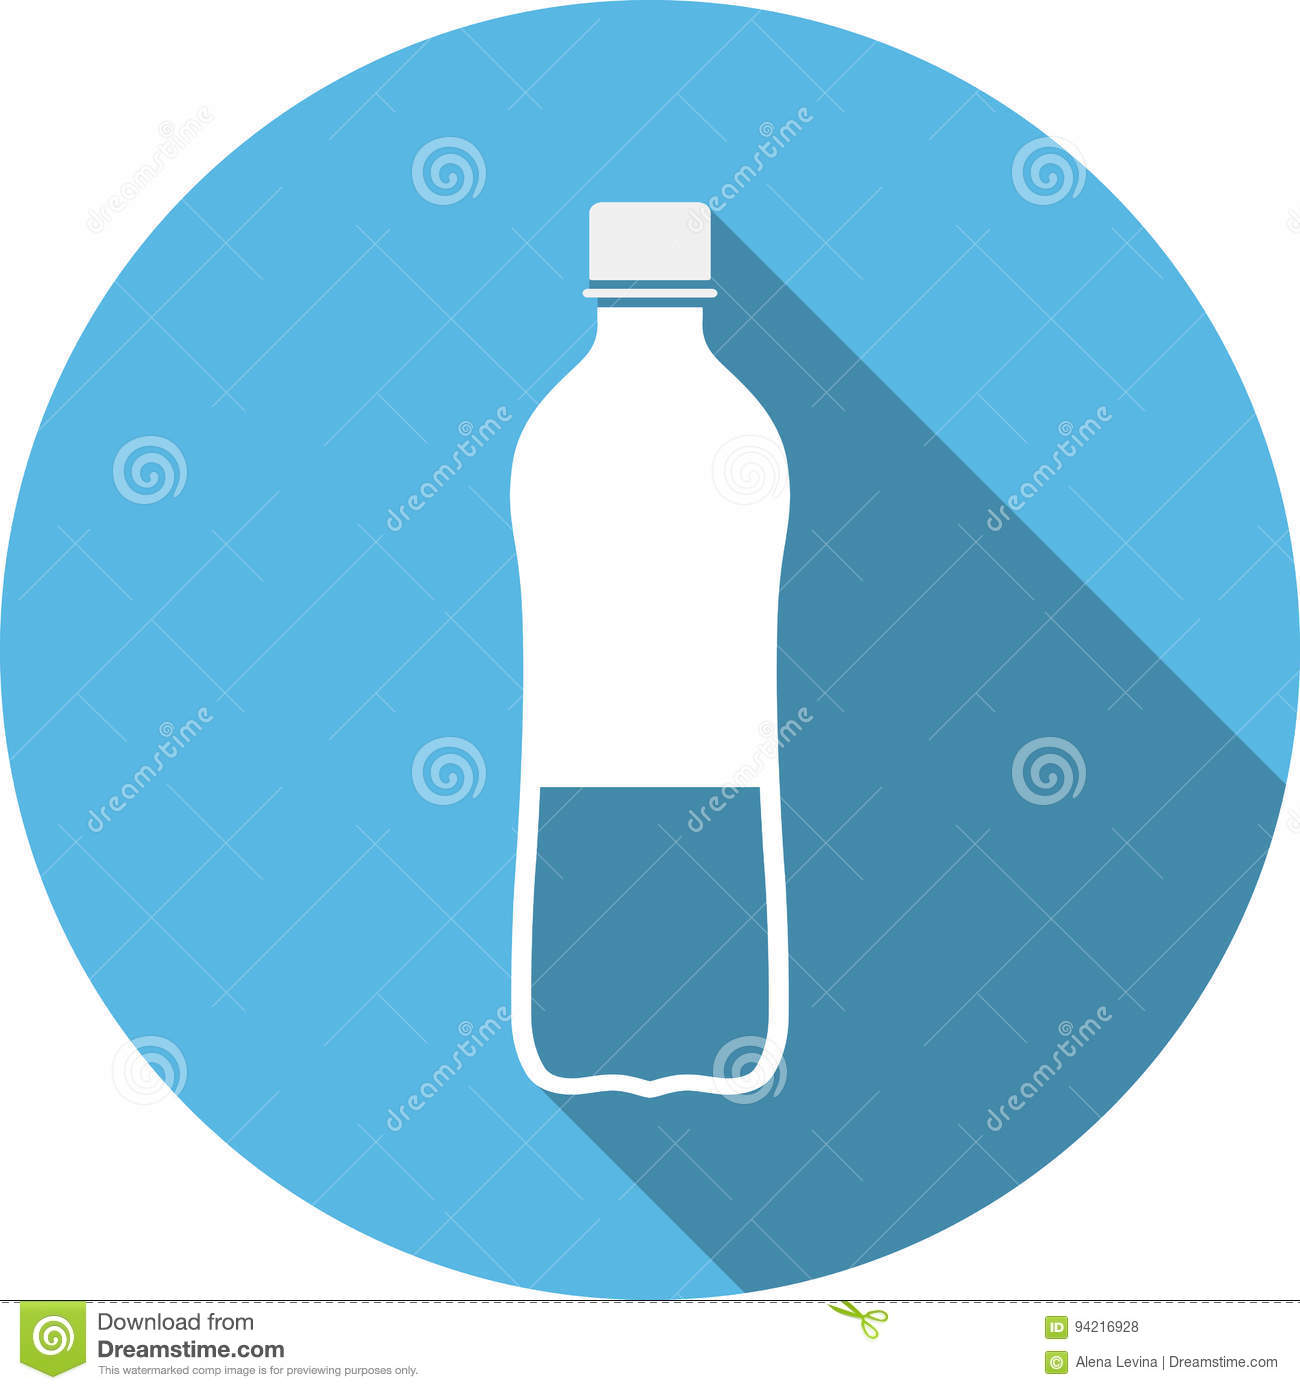 Clean Water With Long Shadow Flat Vector Symbols Stock Vector